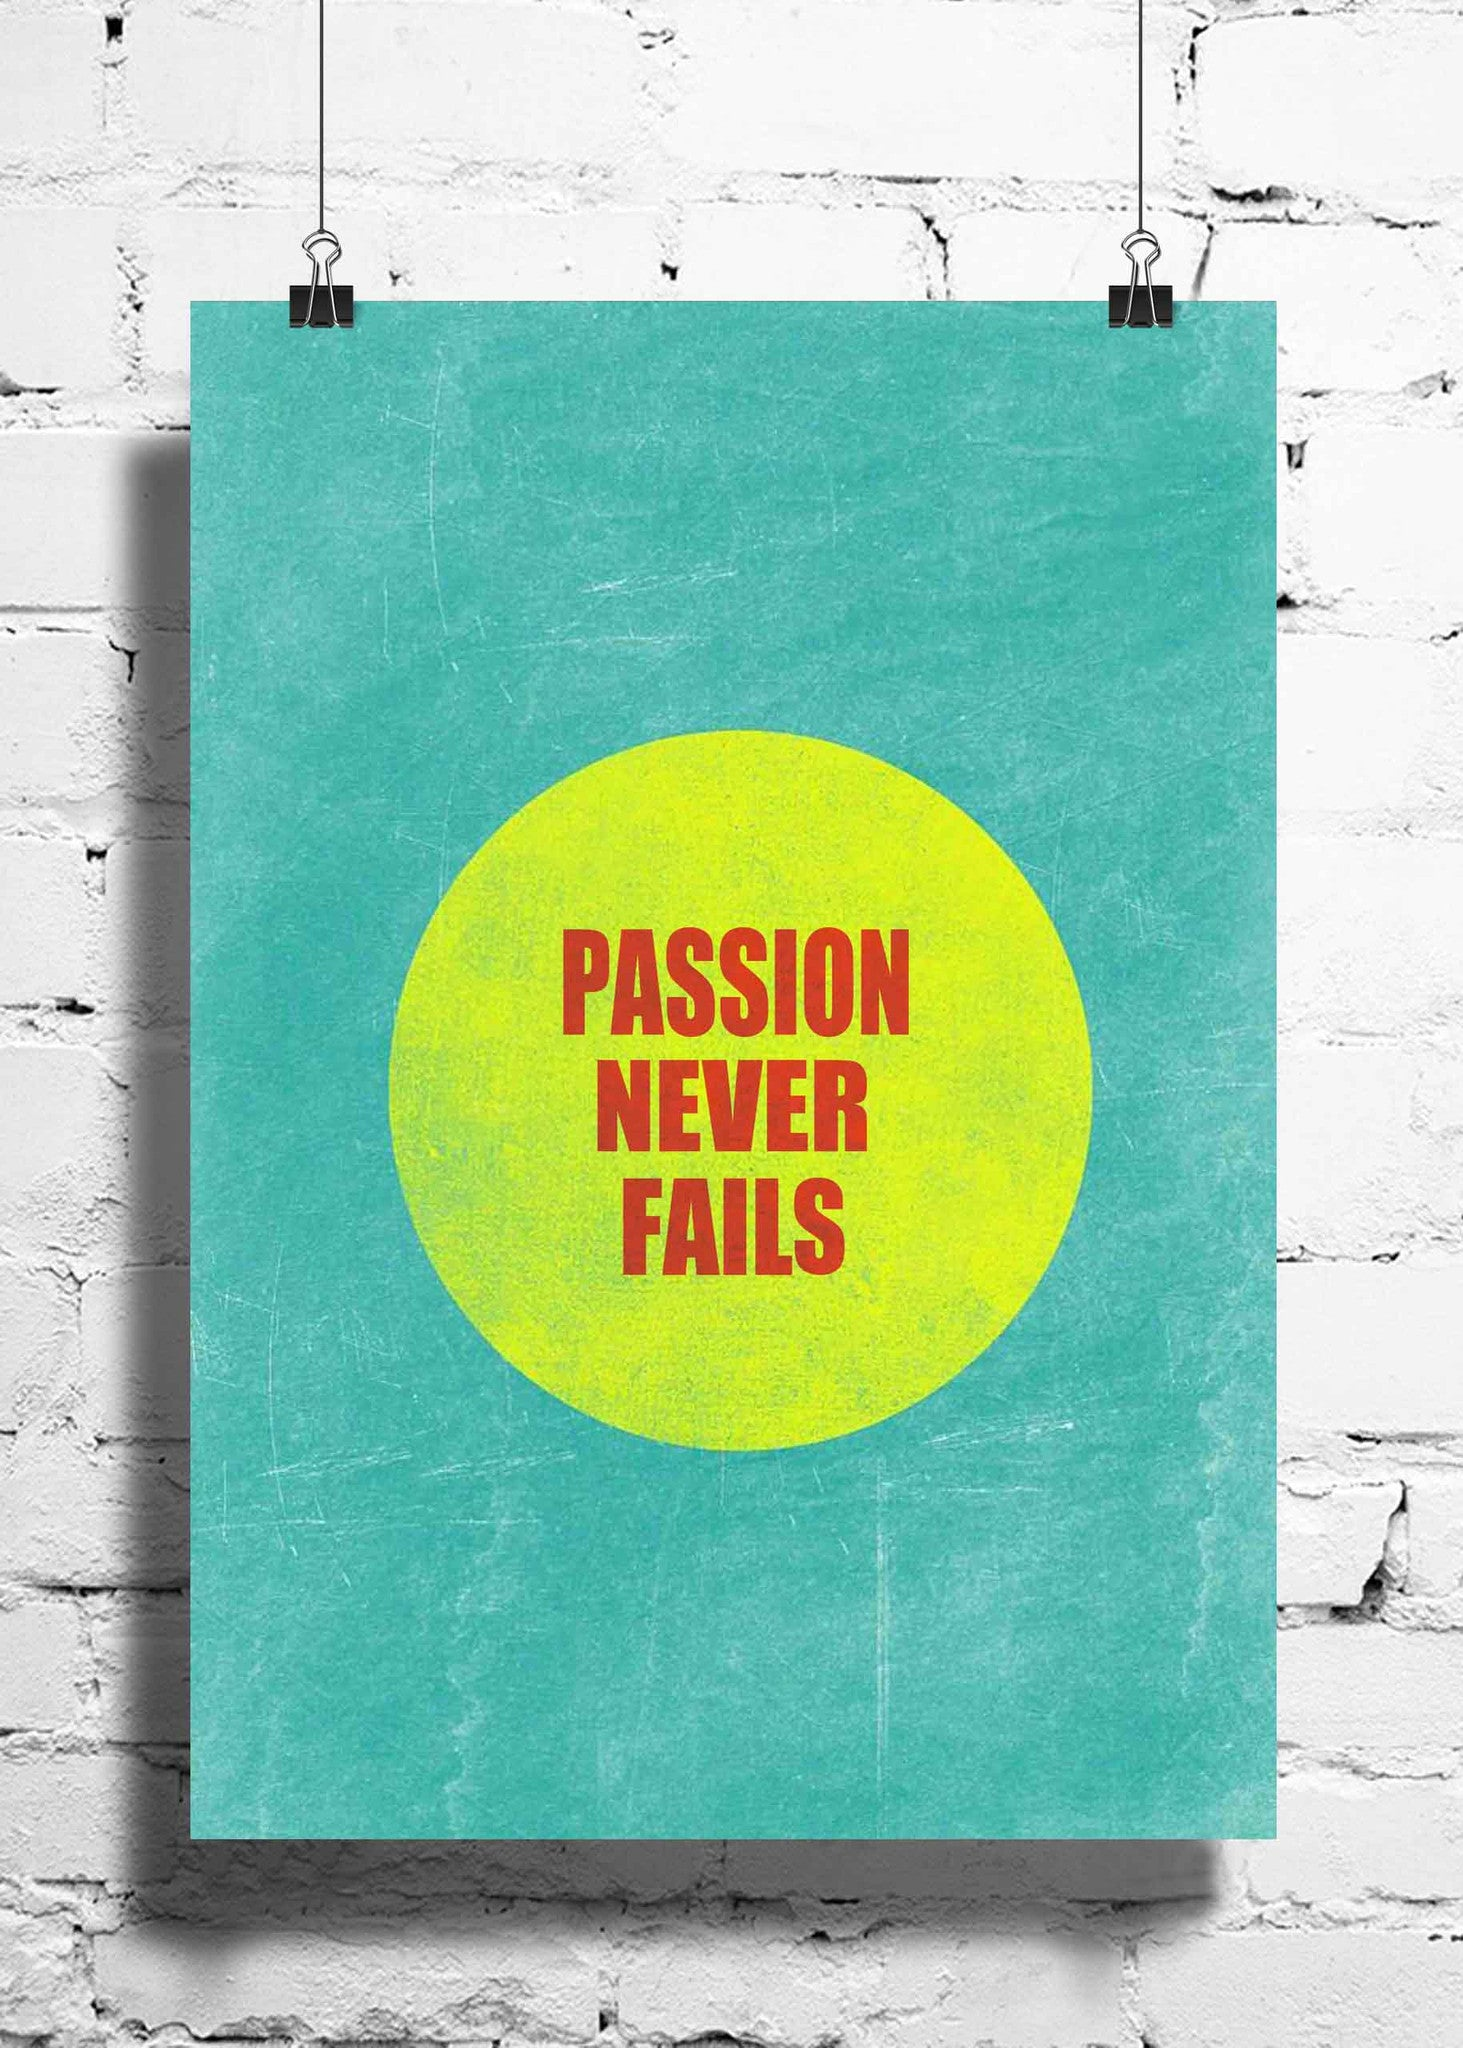 Cool Abstract Motivation Passion never wall posters, art prints, stickers decals - stuffpanda - 1